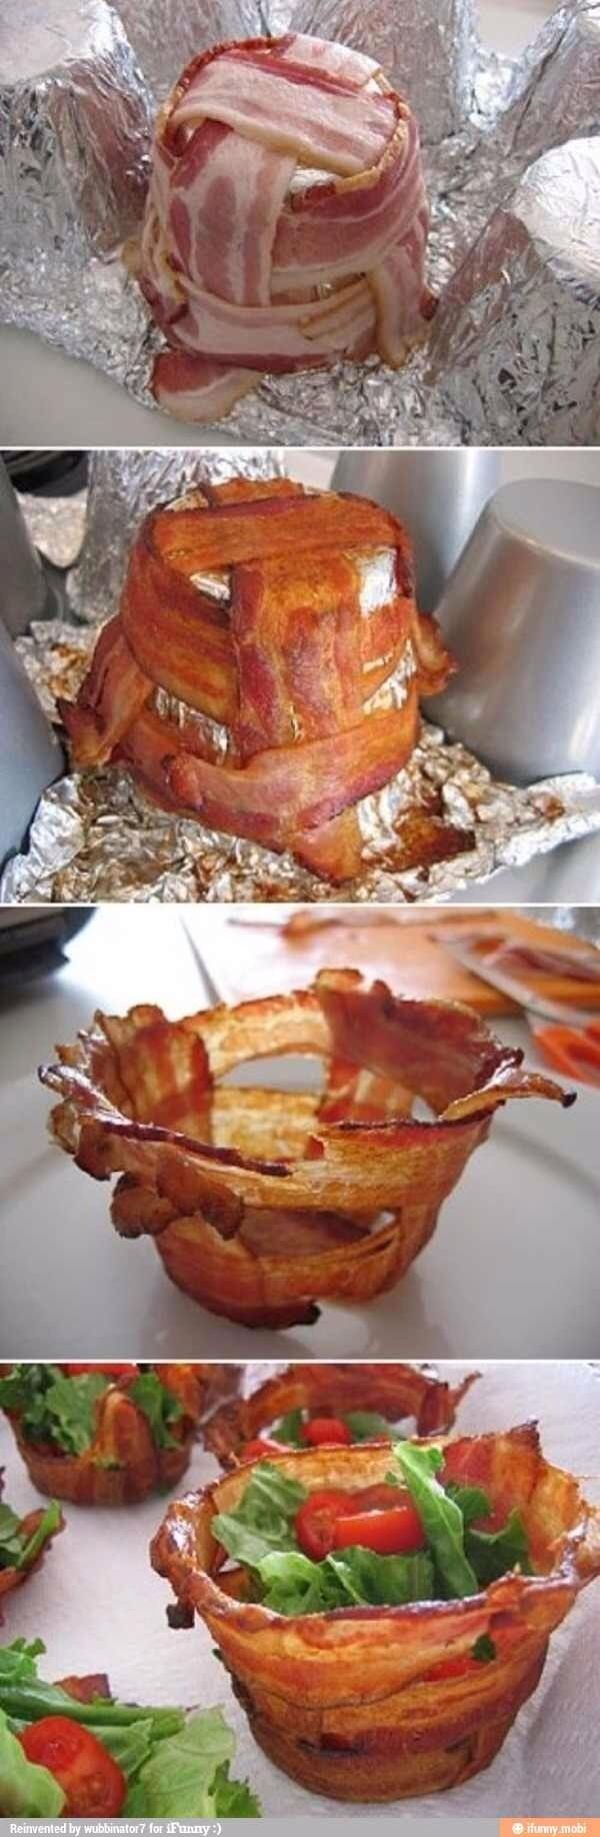 Wedding Bridesmaid Brunch. Luncheon, Breakfast Buffet. Bacon bowls!